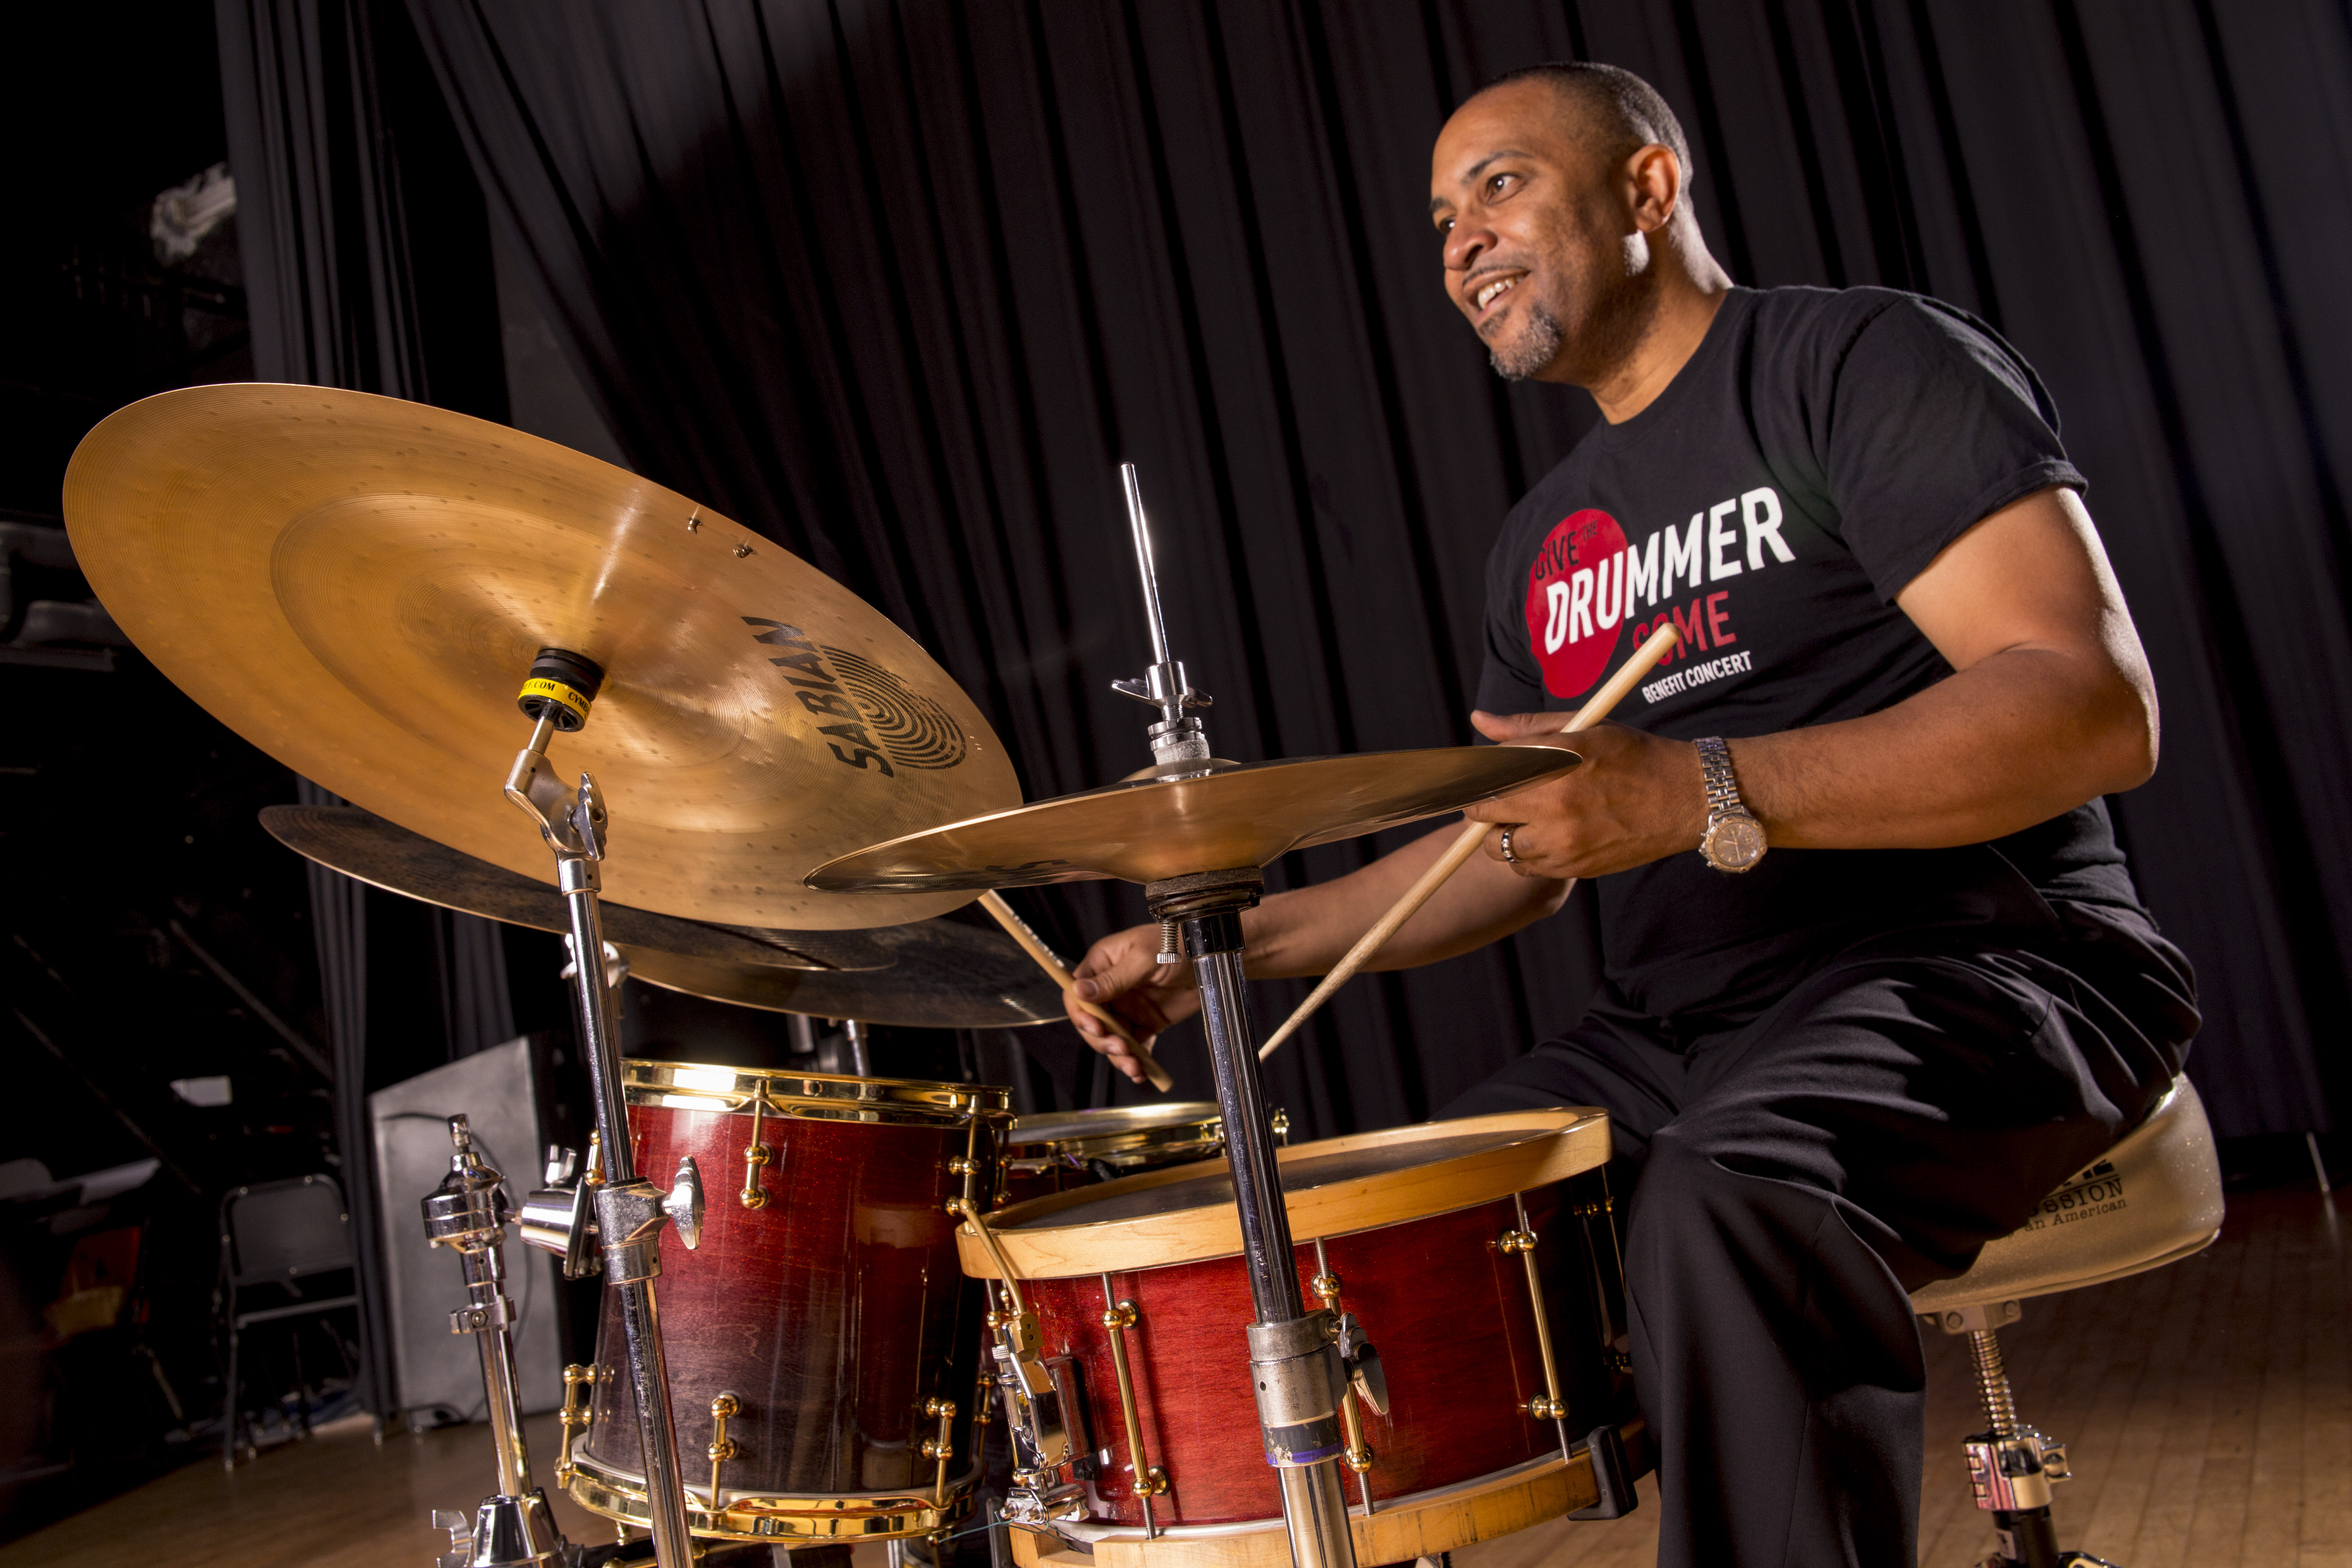 Thomas Taylor Give the Drummer some